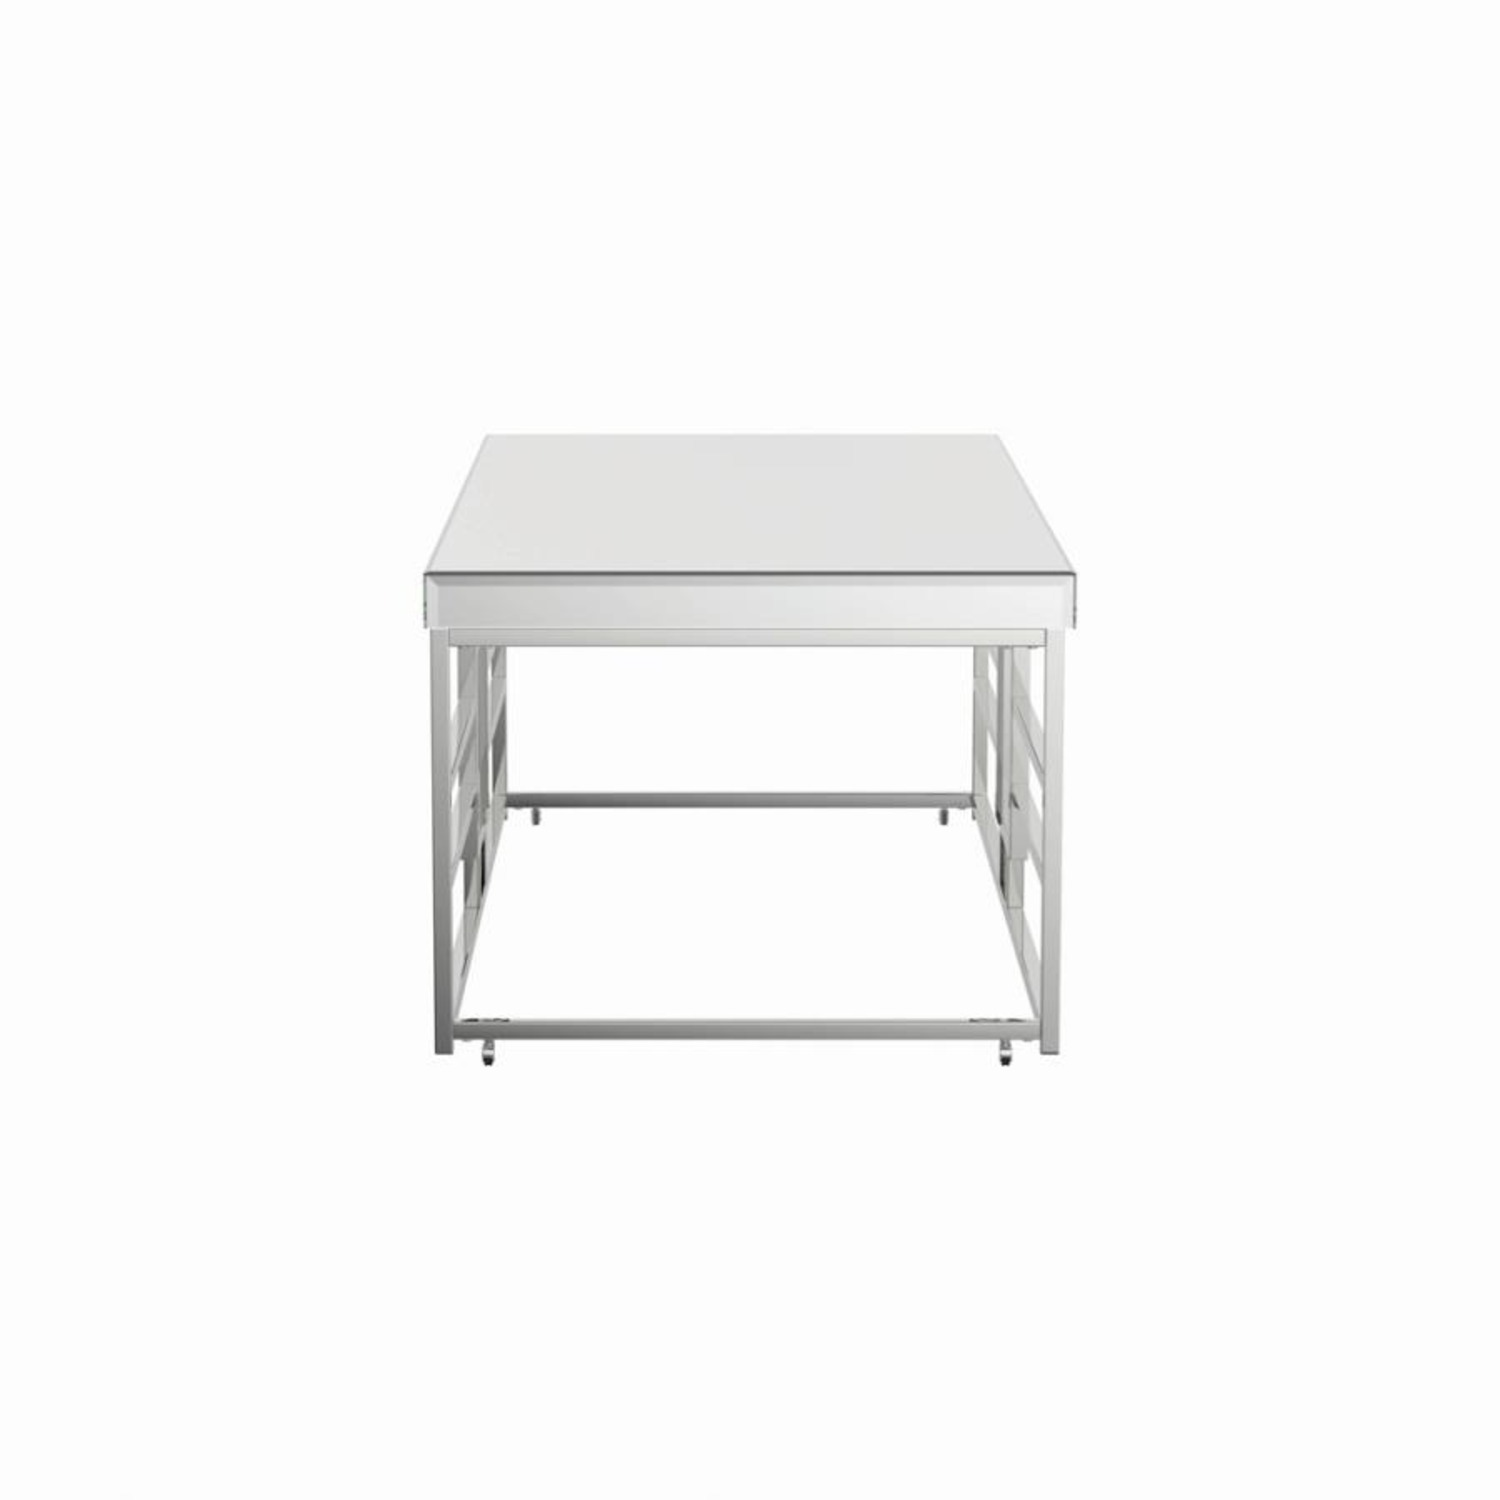 Modern Coffee Table In Chrome Finish Frame - image-2